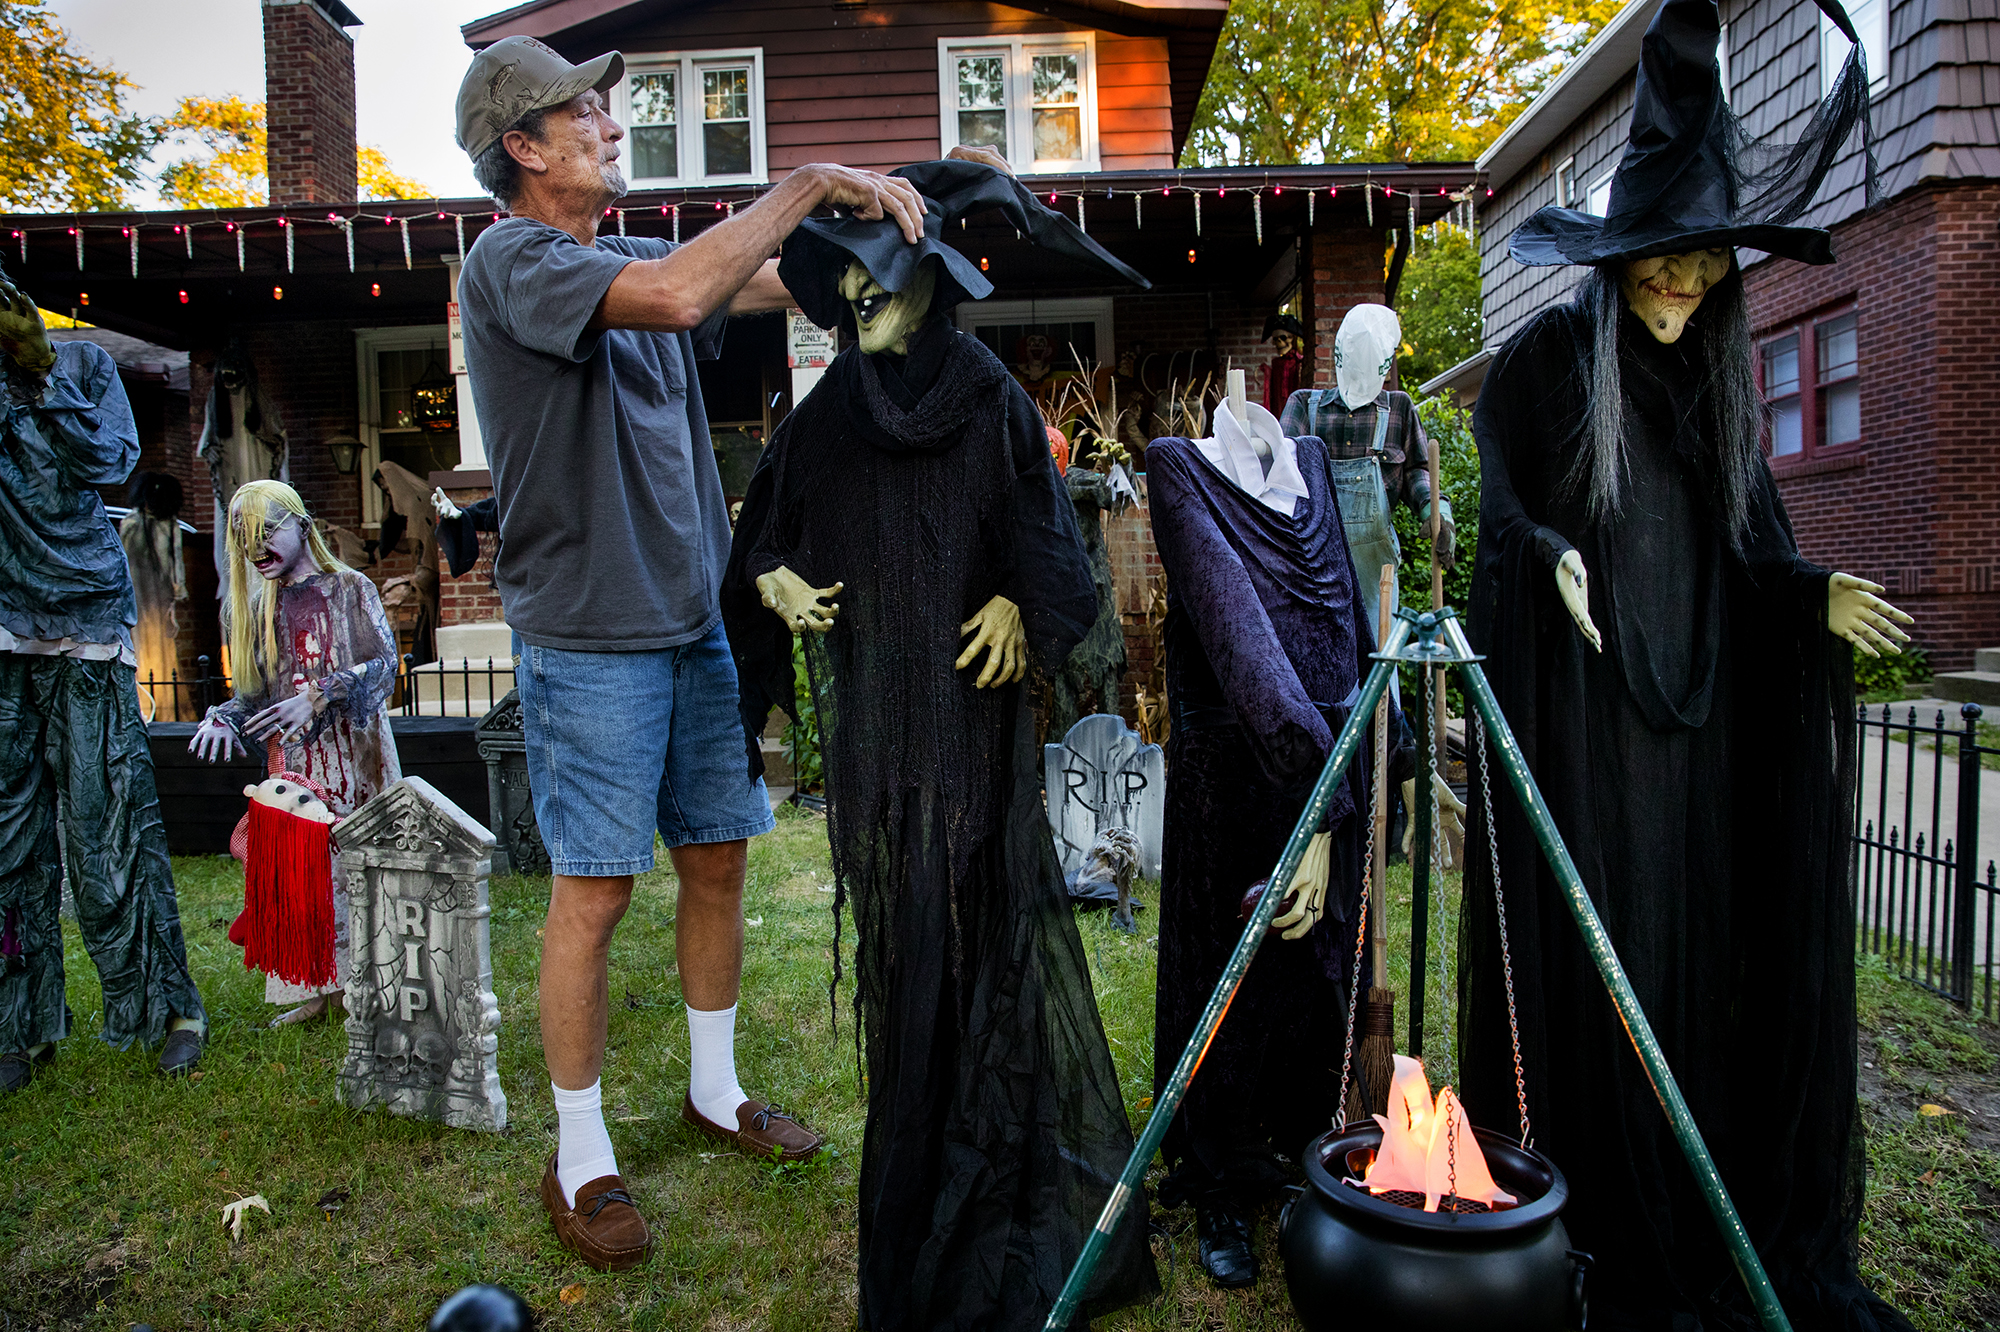 Mike West adjusts a witch's hat in his front yard Halloween display Monday, Oct. 8, 2018. West has been installing monsters in his yard for Halloween with the help of his children for about 25 years, a process he usually starts in mid to late September. The South Sixth Street display gets creepier at dusk as he illuminates the scene with extra lights. [Ted Schurter/The State Journal-Register]